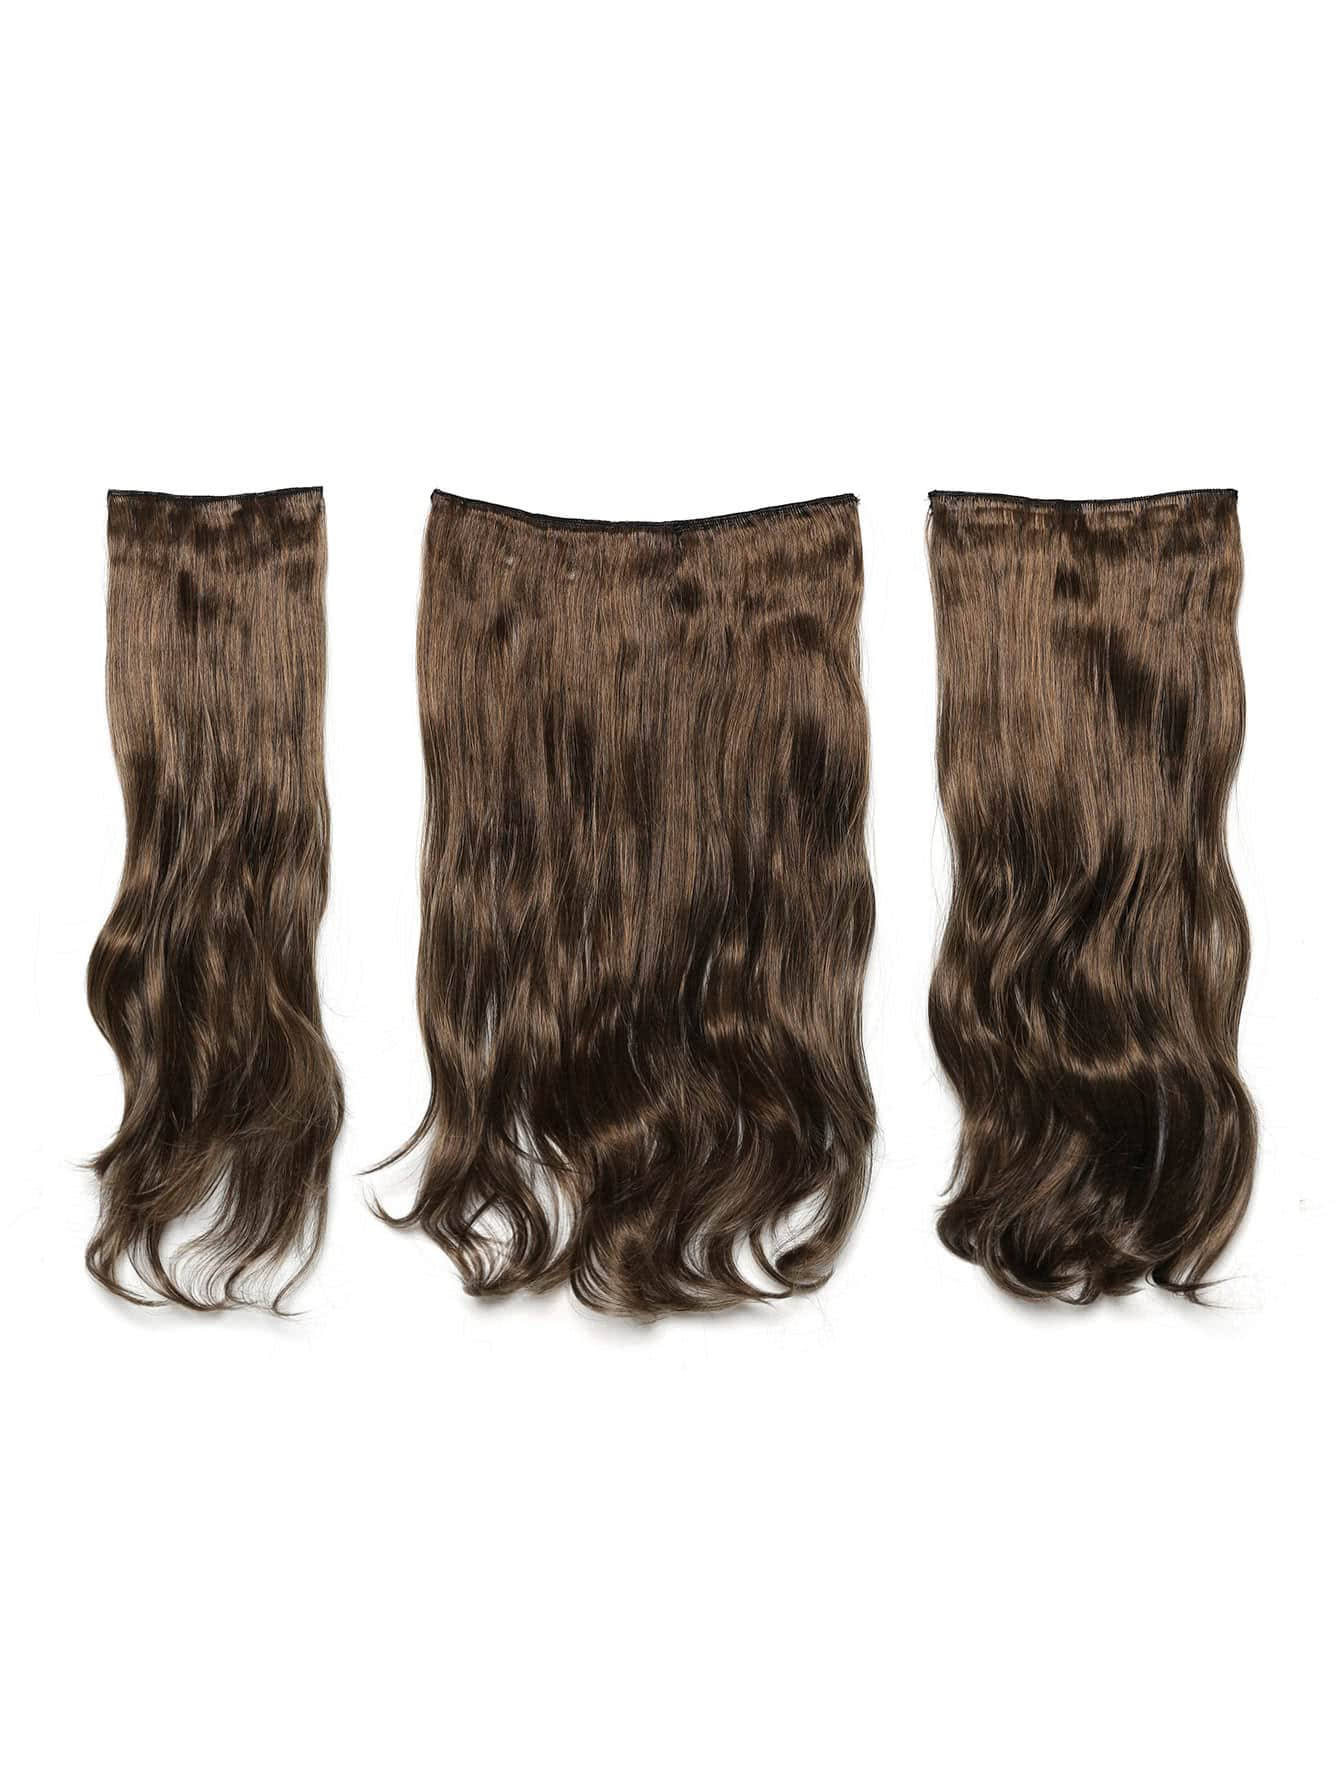 все цены на Dark Brown & Caramel Clip In Soft Wave Hair Extension 3pcs онлайн